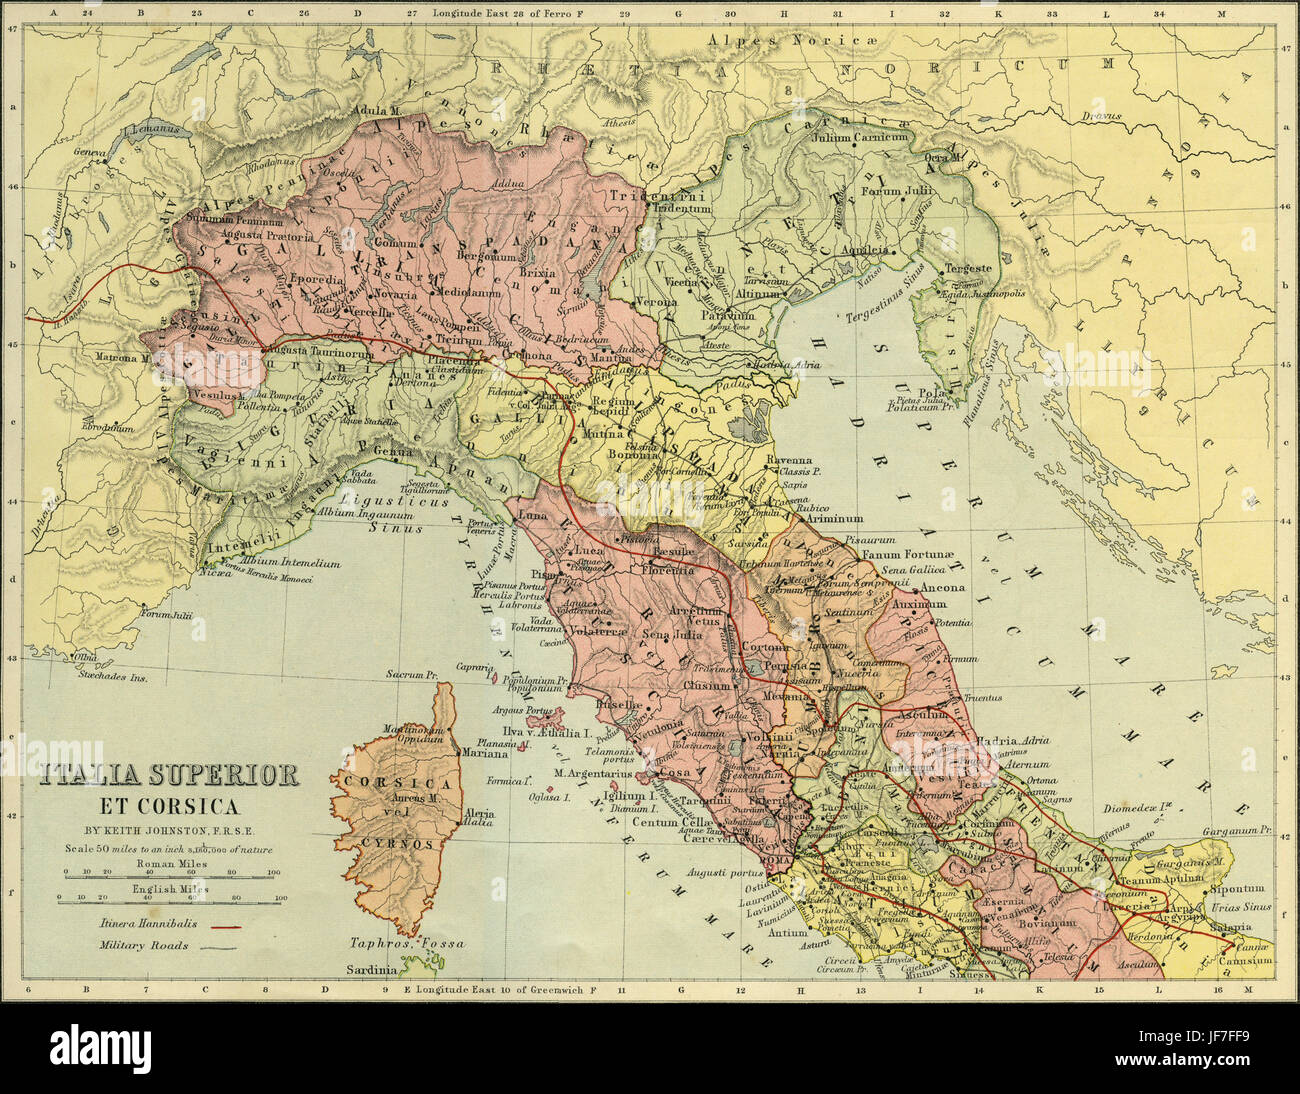 Map of Italia Superior and Corsica - Roman northern Italy and Corsica, showing military roads and the route of Hannibal - Stock Image